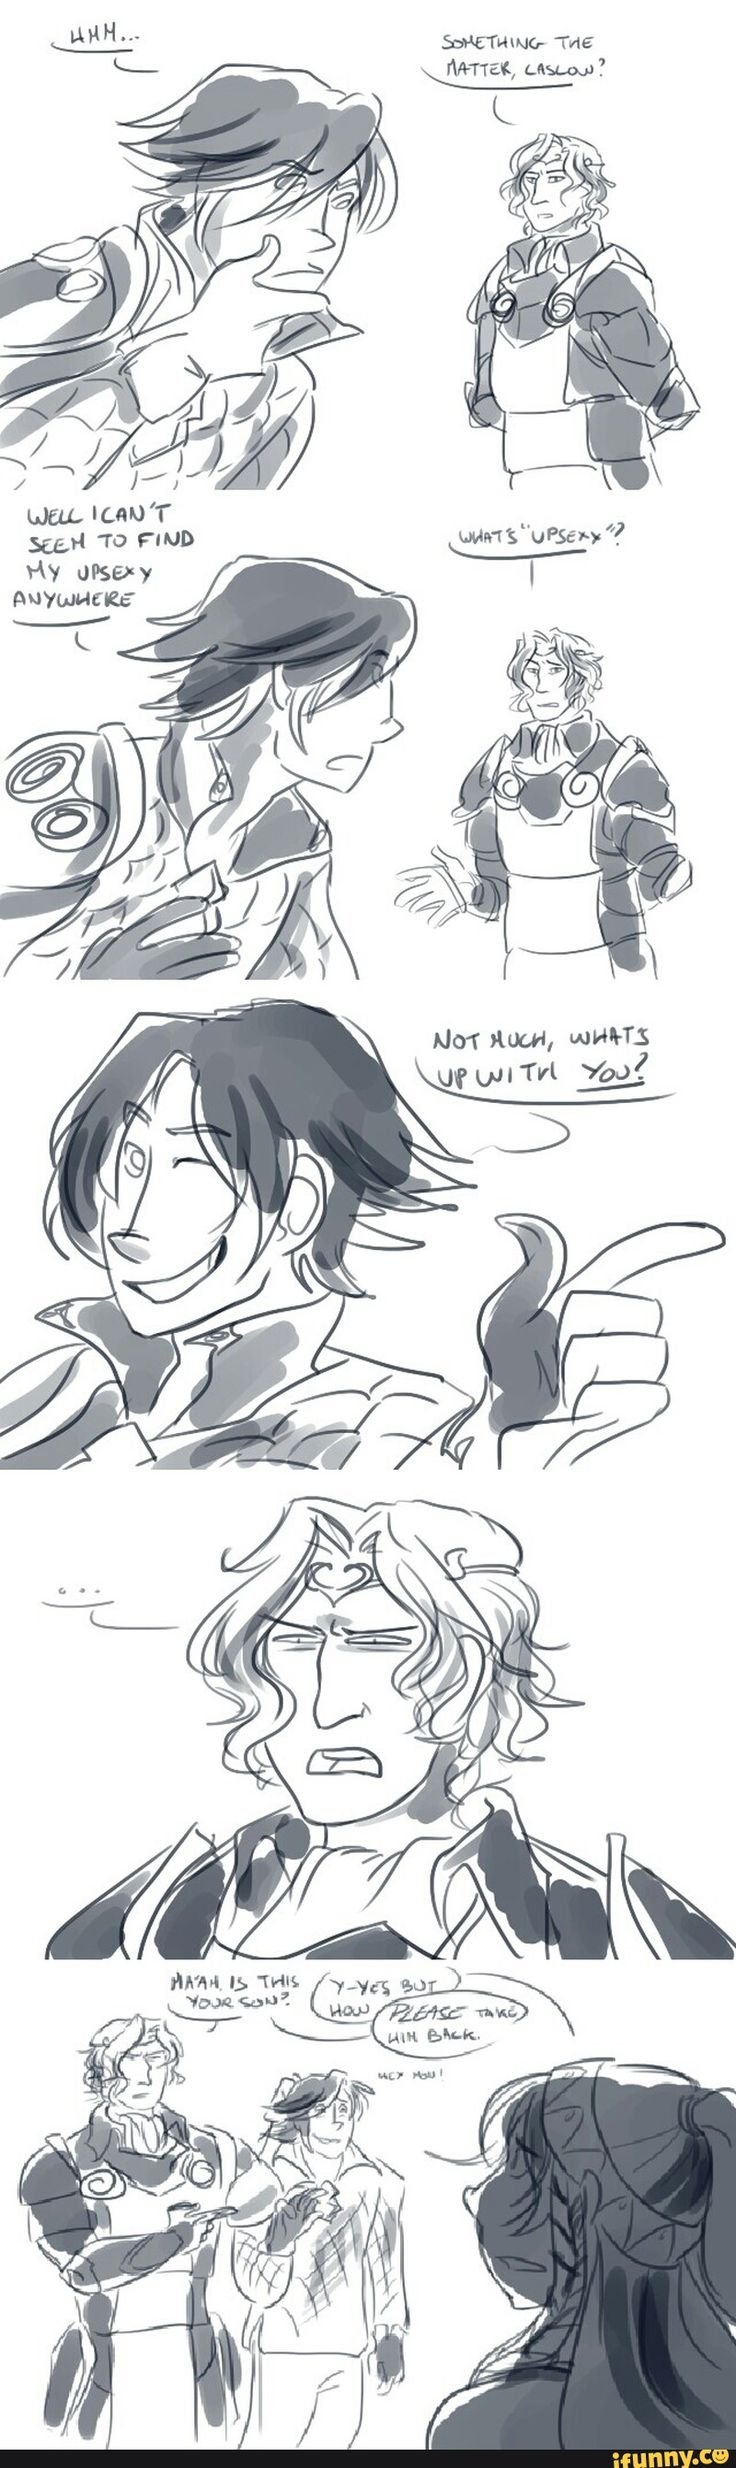 Fire Emblem Fates - Laslow BEING forward AGAIN. XD he sent him back to Olivia